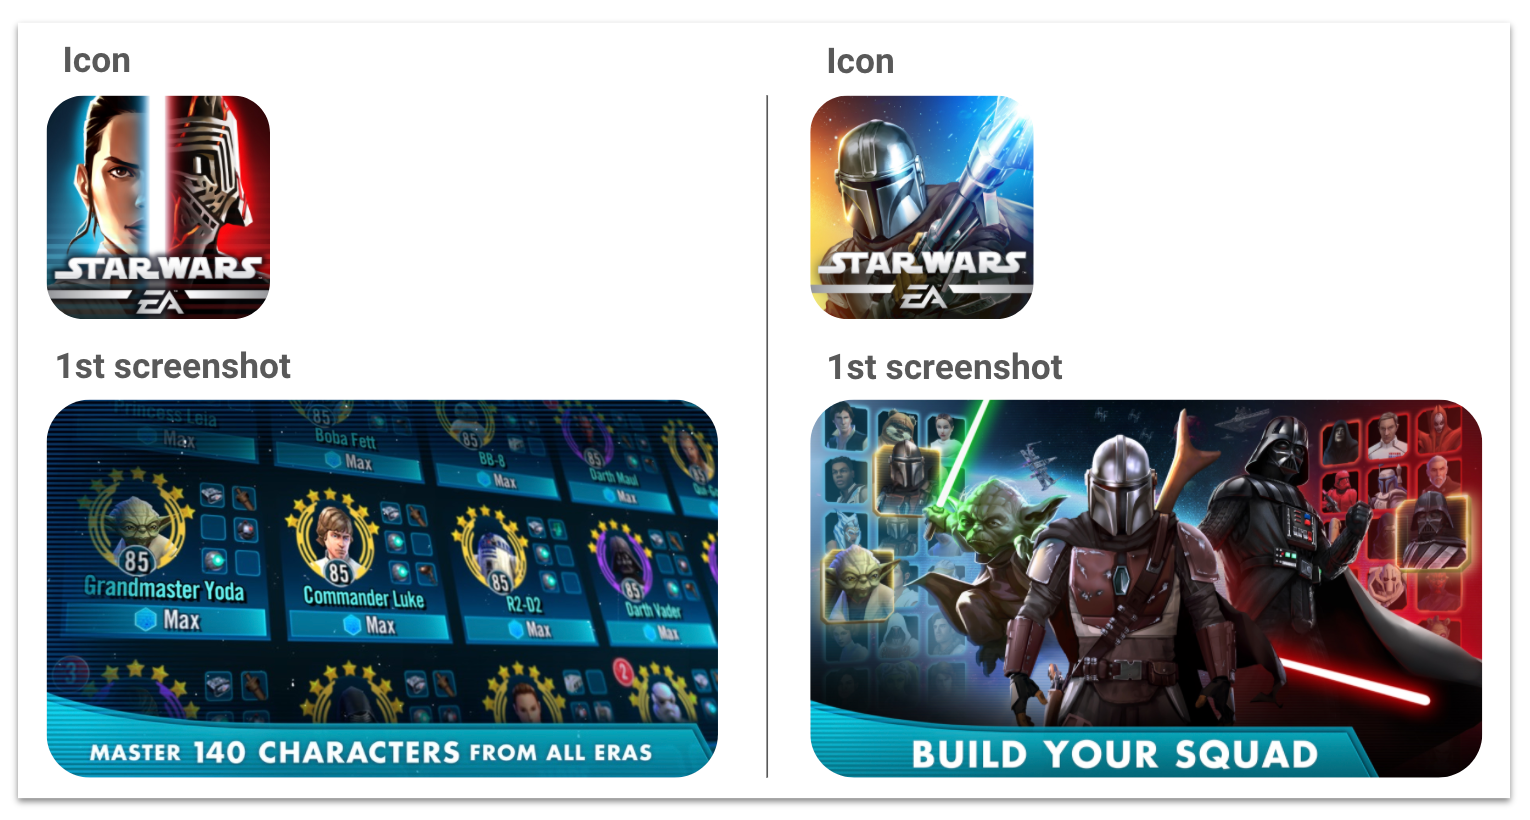 Creative changes for Star Wars: Galaxy of Heroes iOS